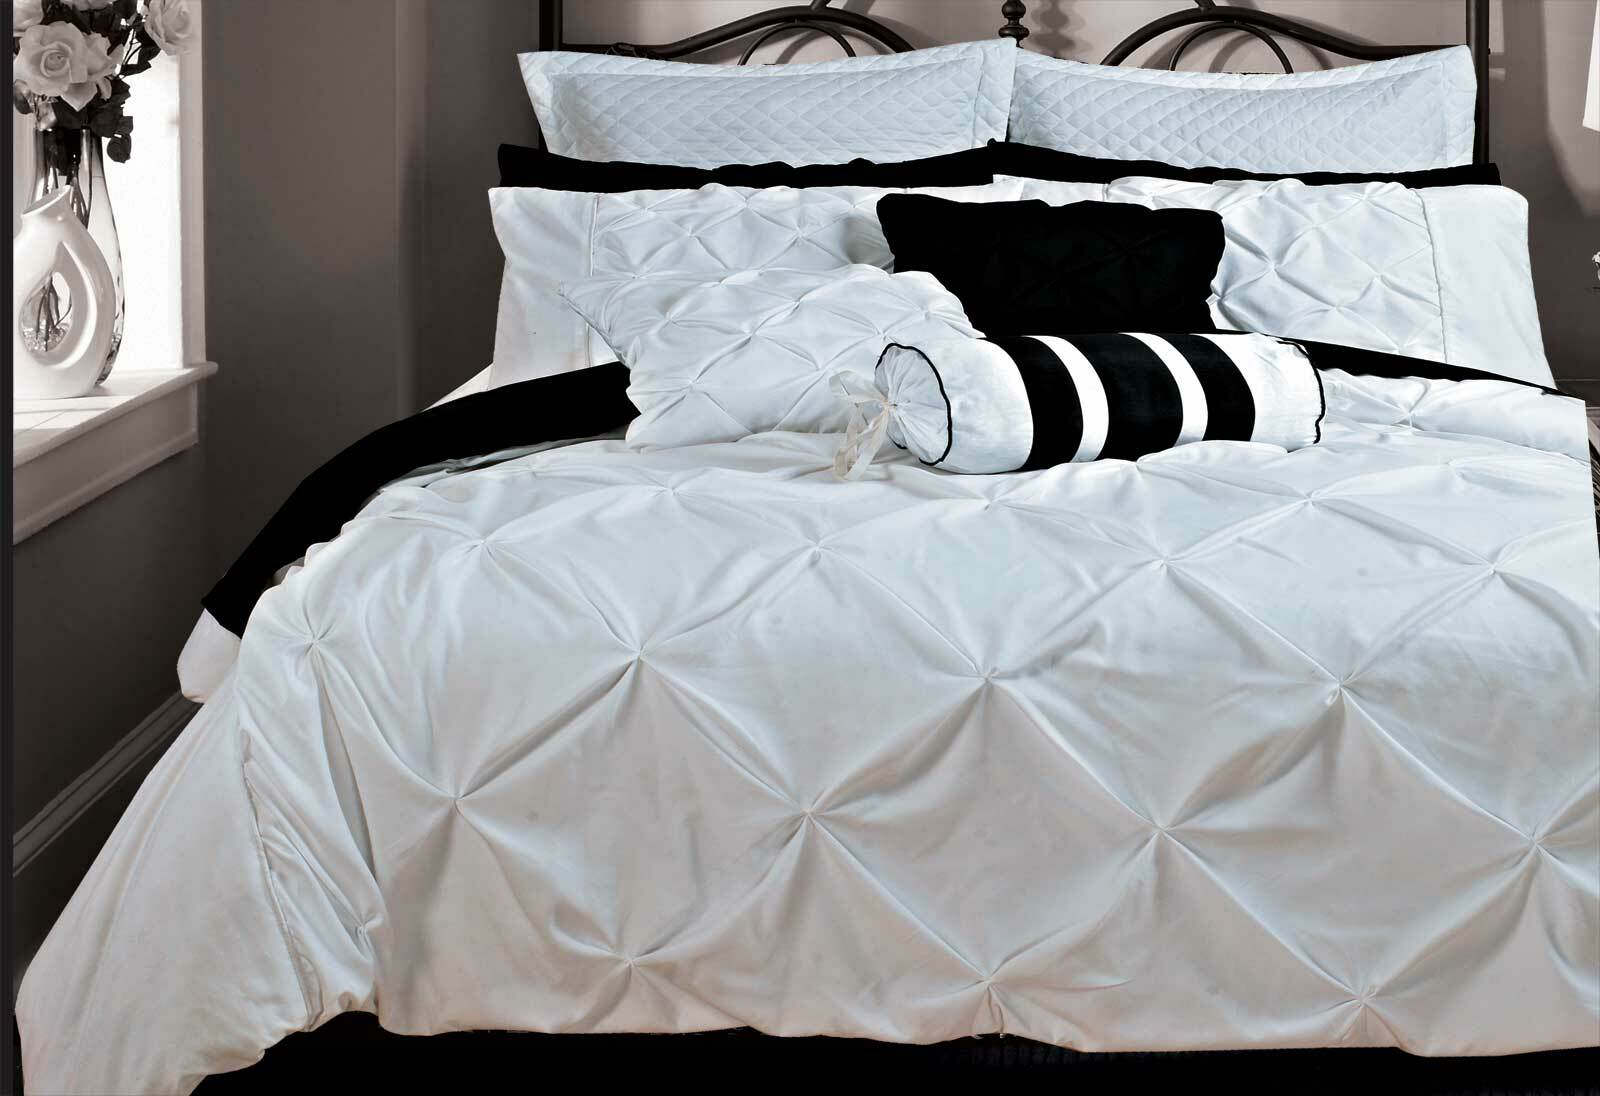 Fantine White Quilt Cover Set Queen  King  Super King  Manchester Direct Warehouse